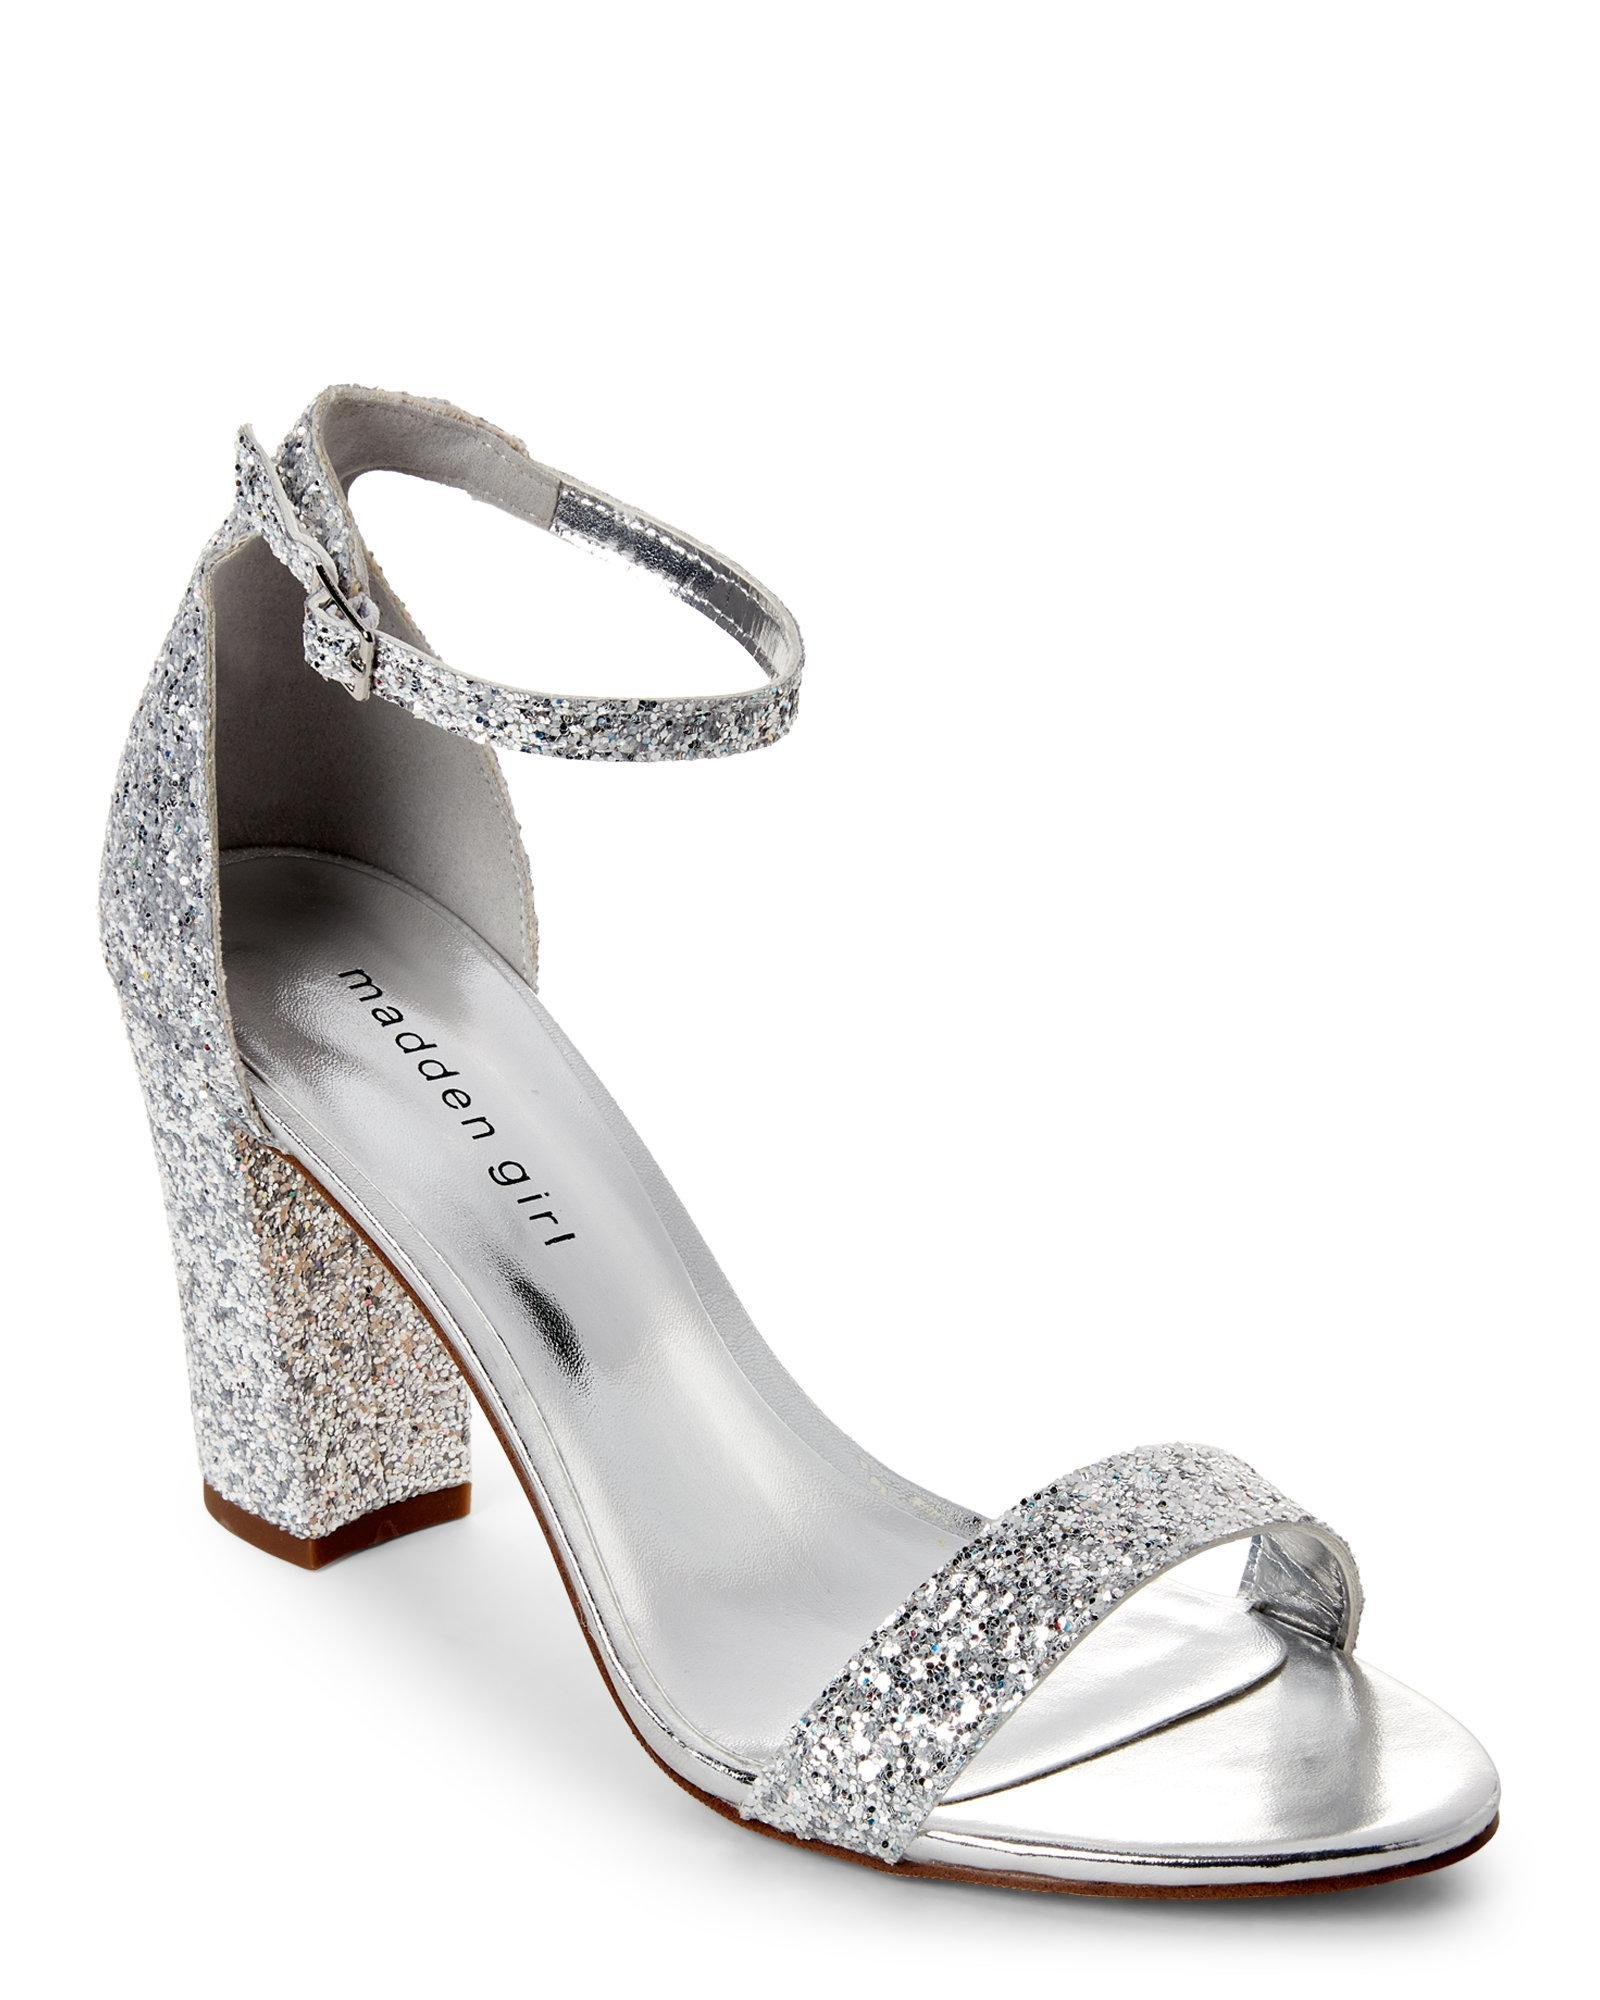 2a670b701f5 Lyst - Madden Girl Silver Bella Glitter Open Toe Heels in Metallic